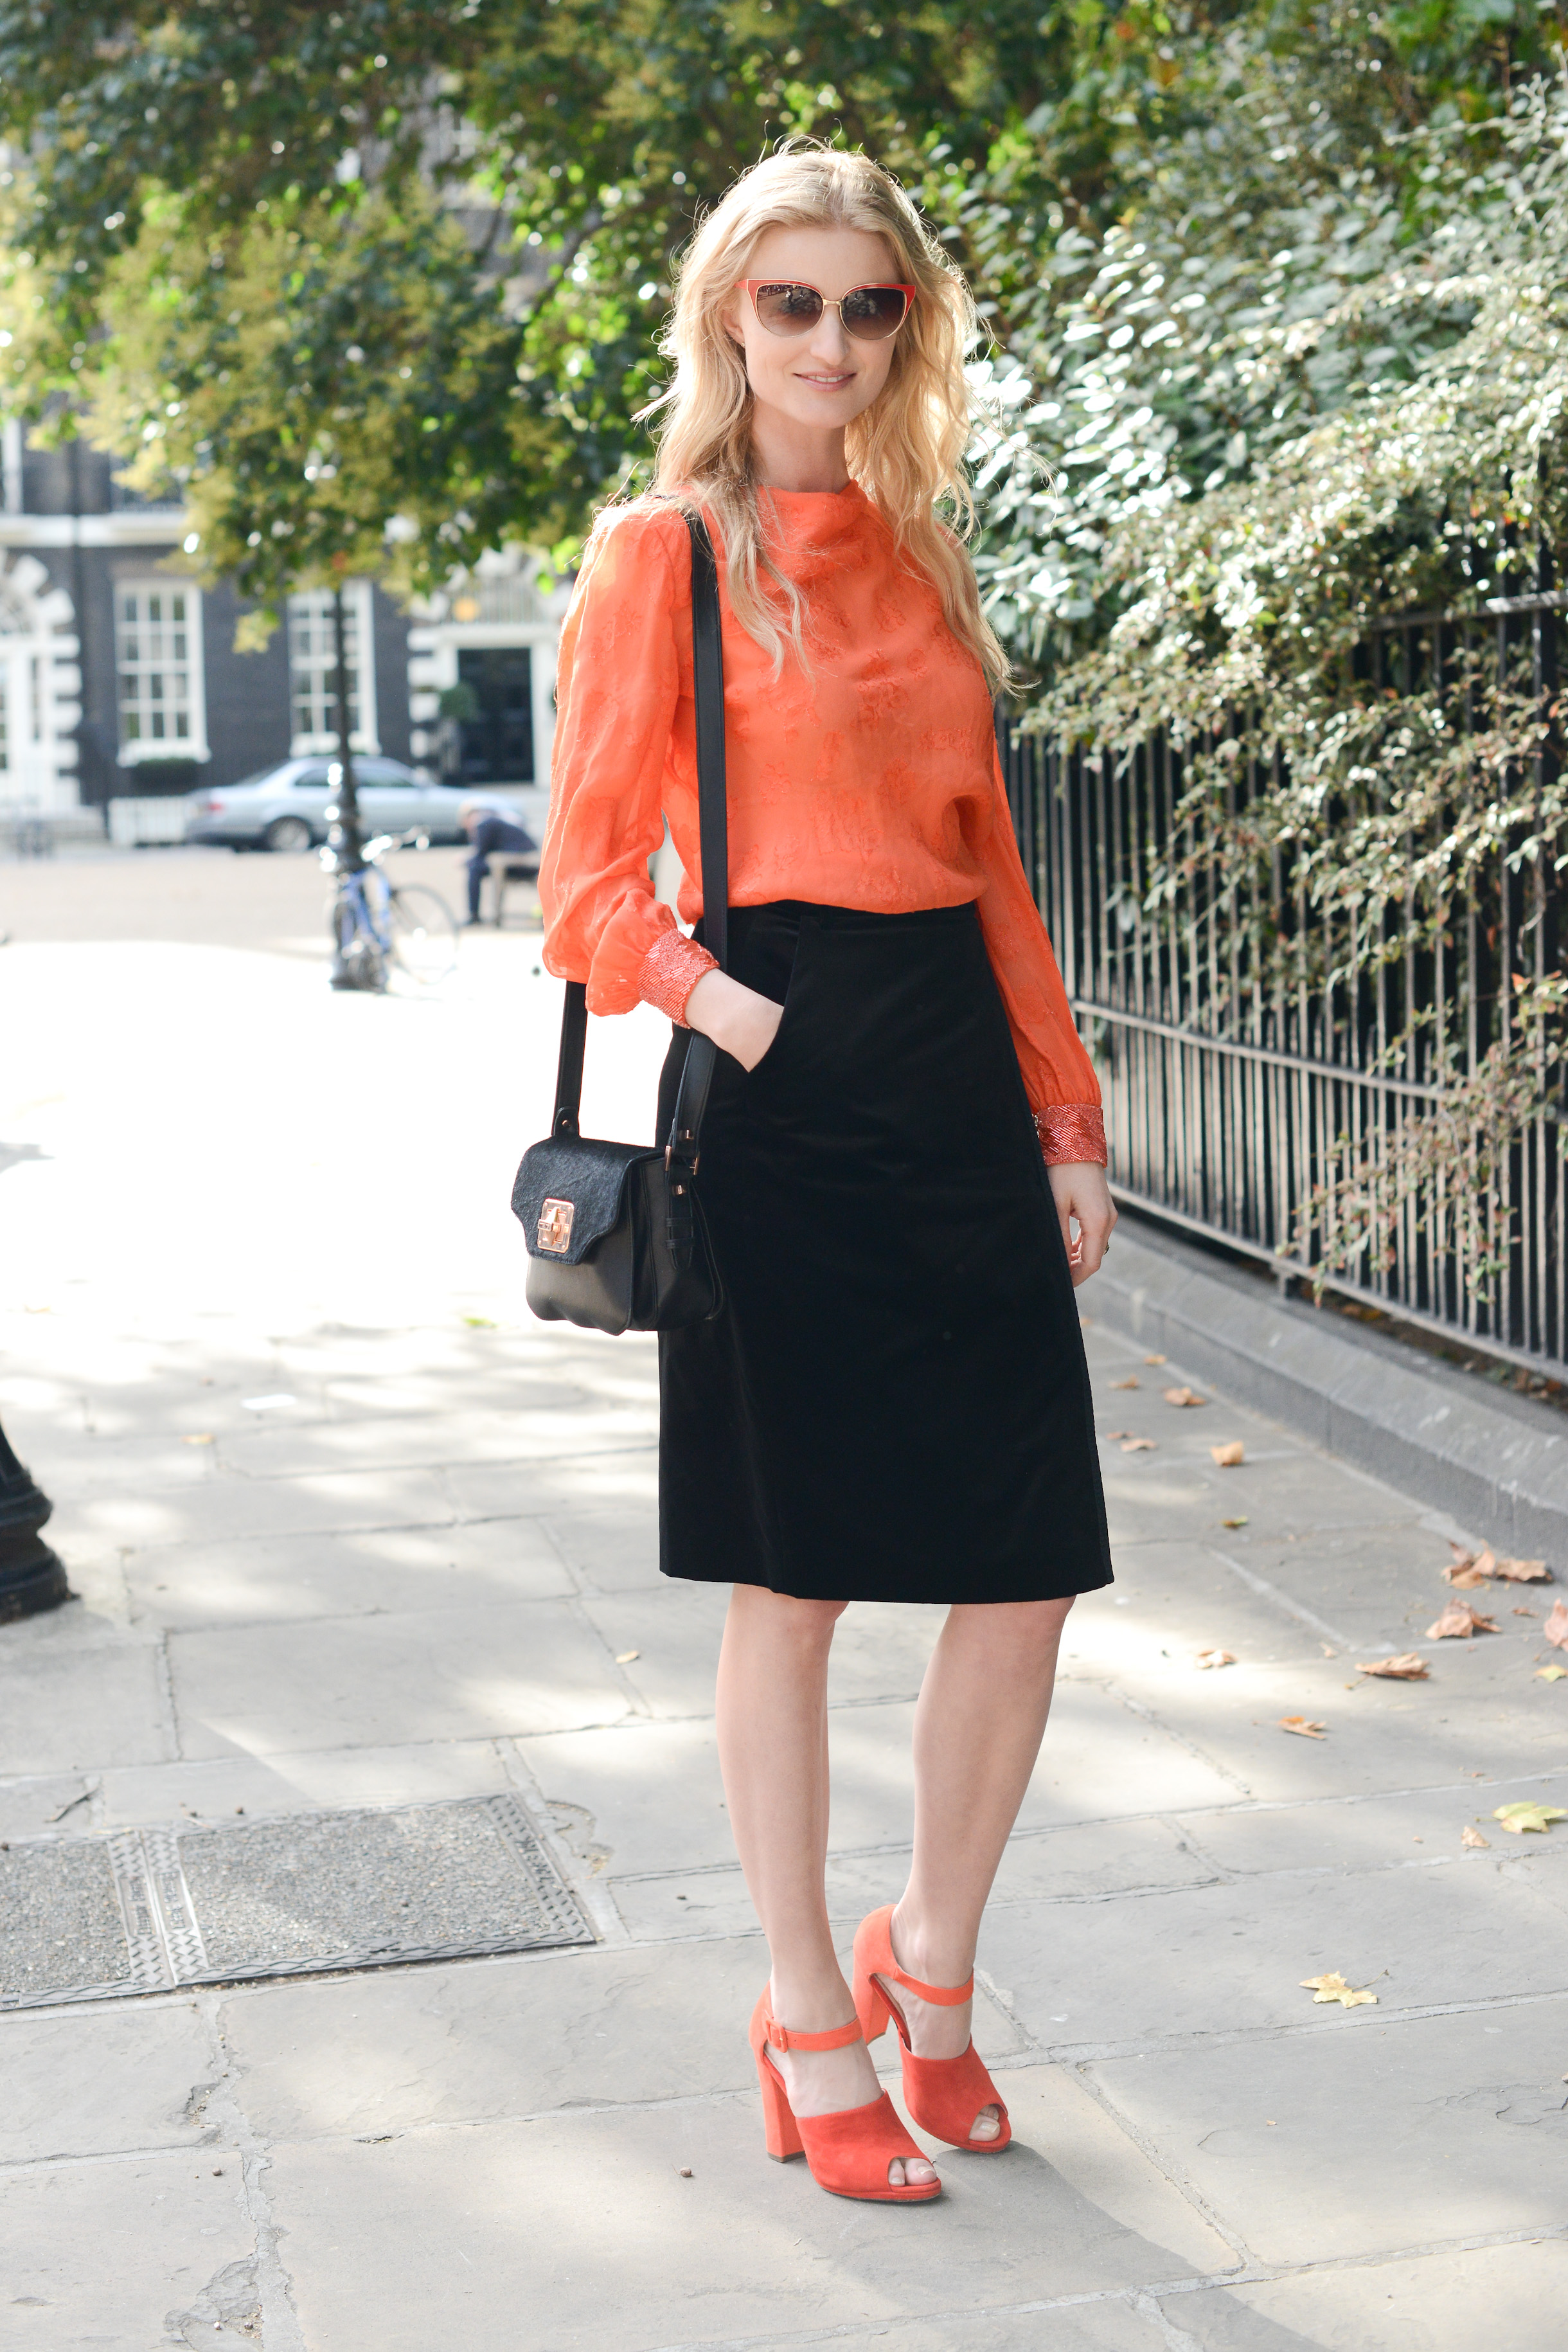 Embody your orange side by complementing your outfit with bright accents.